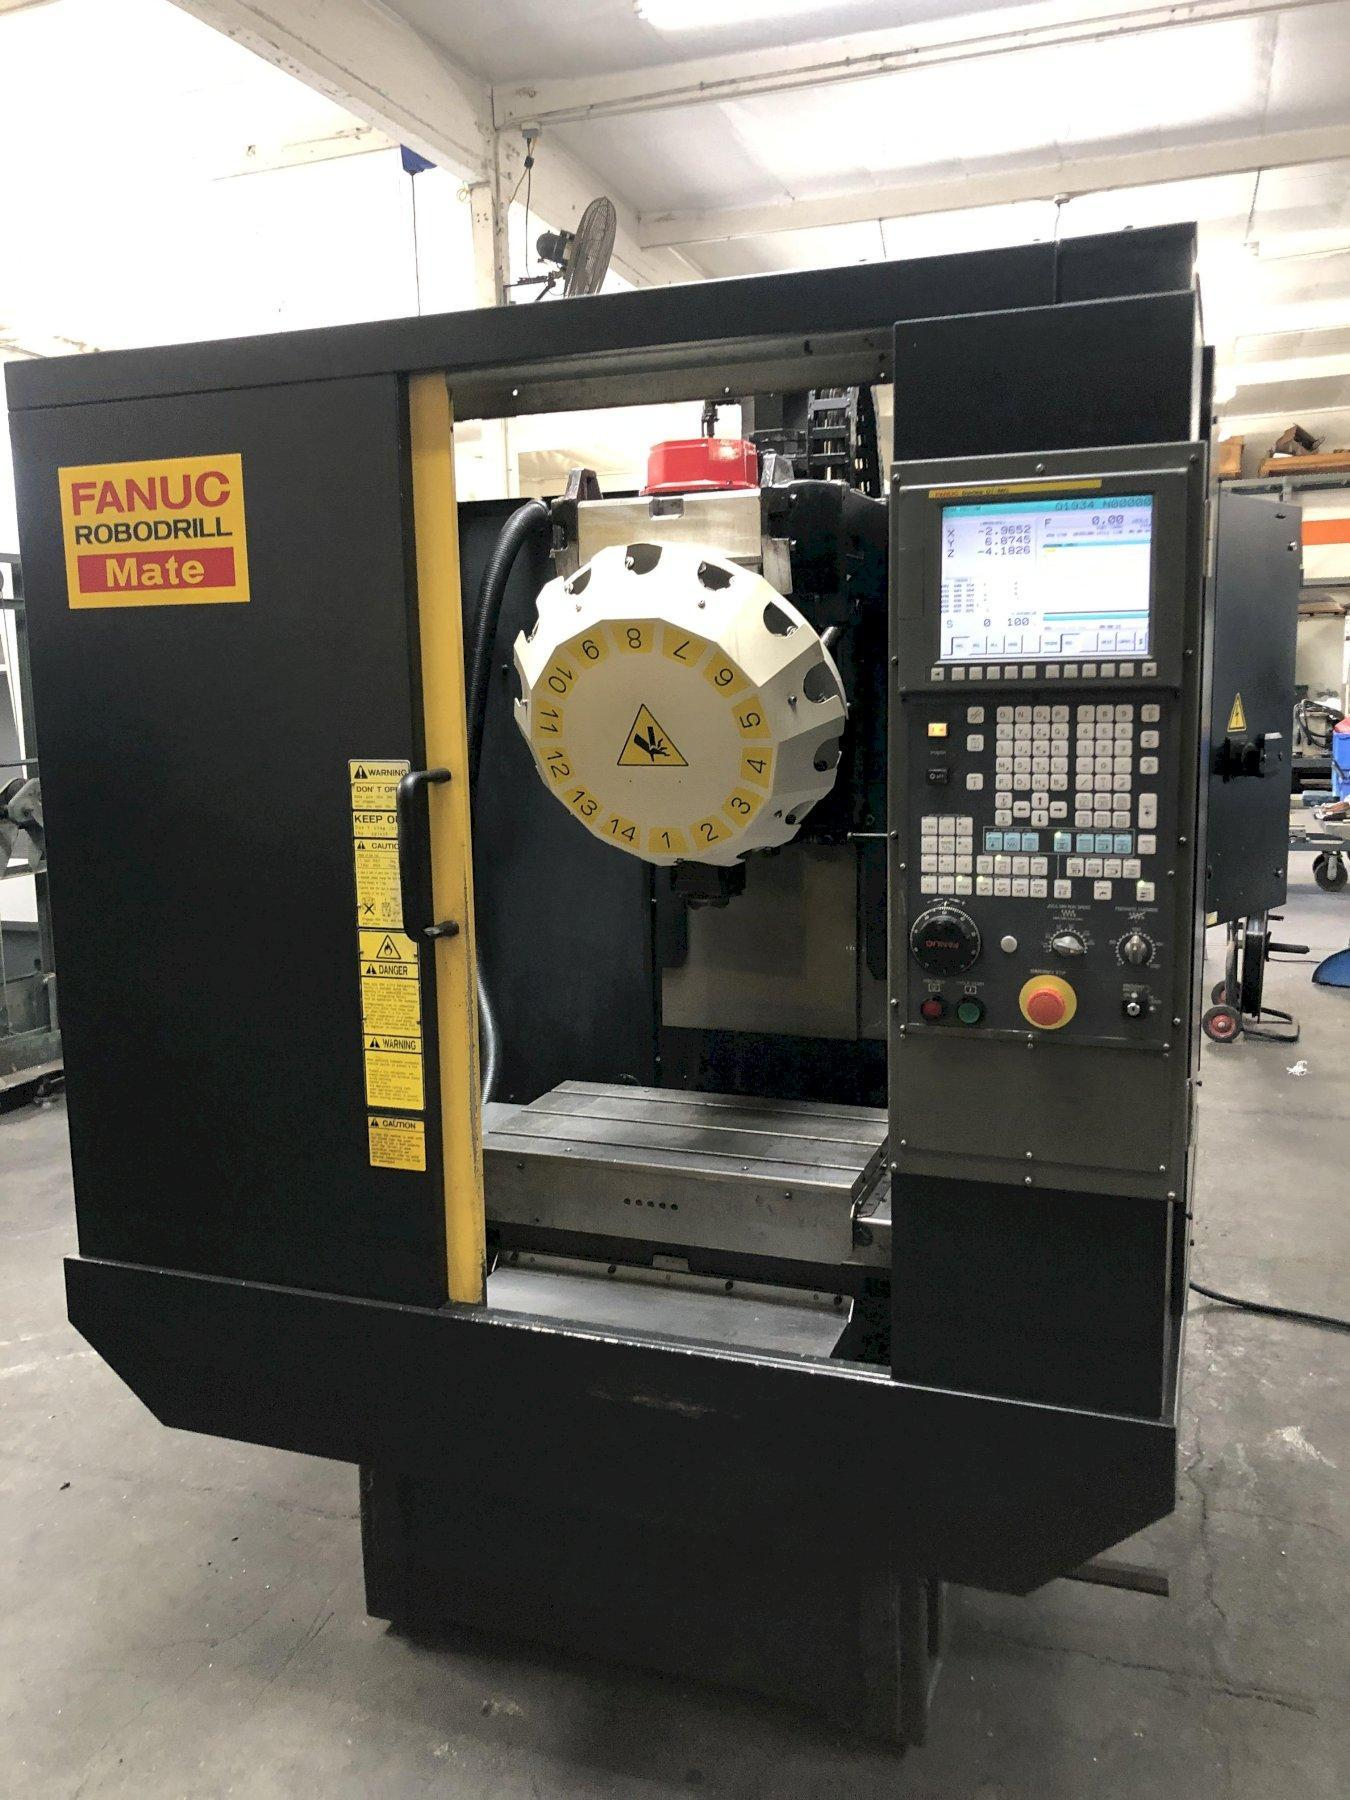 Fanuc Robodrill Mate CNC Drill & Tap Machining Center 2006, Fanuc Oi-MC CNC Control, 14-ATC, 10k RPM Spindle, and Rigid Tapping.